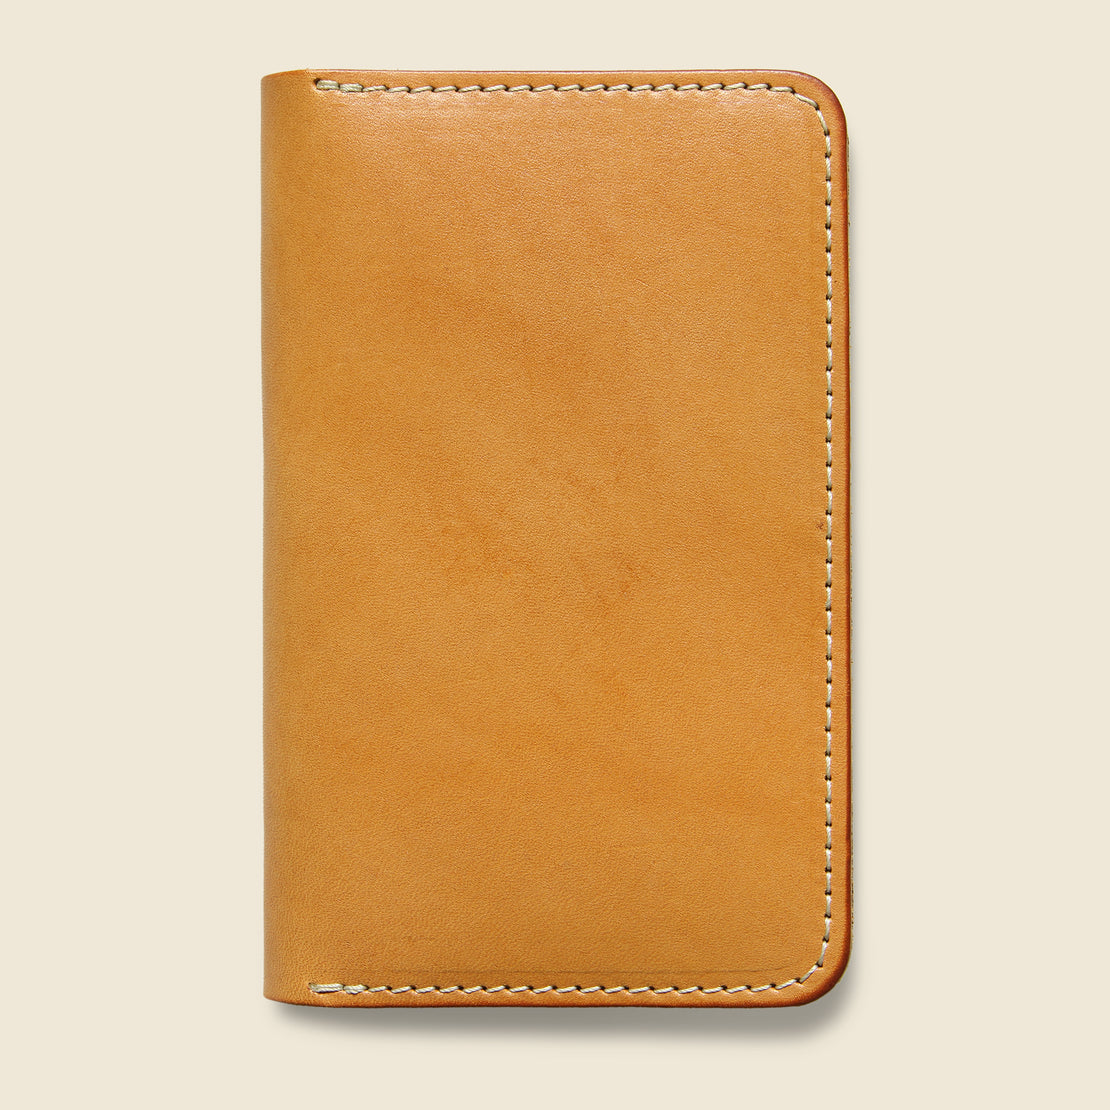 Red Wing Passport Wallet - Tan